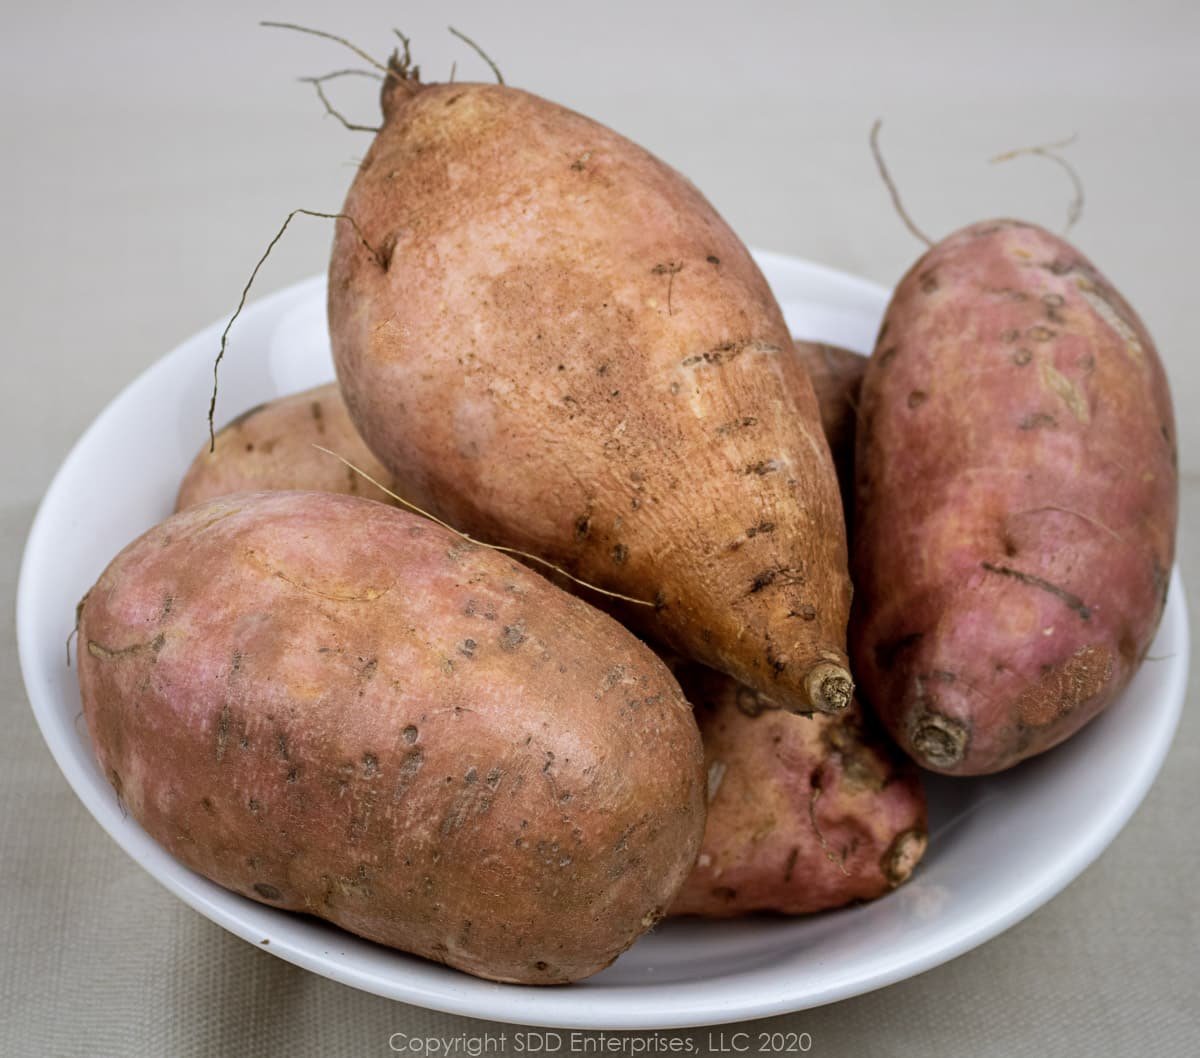 louisiana sweet potatoes in a white bowl